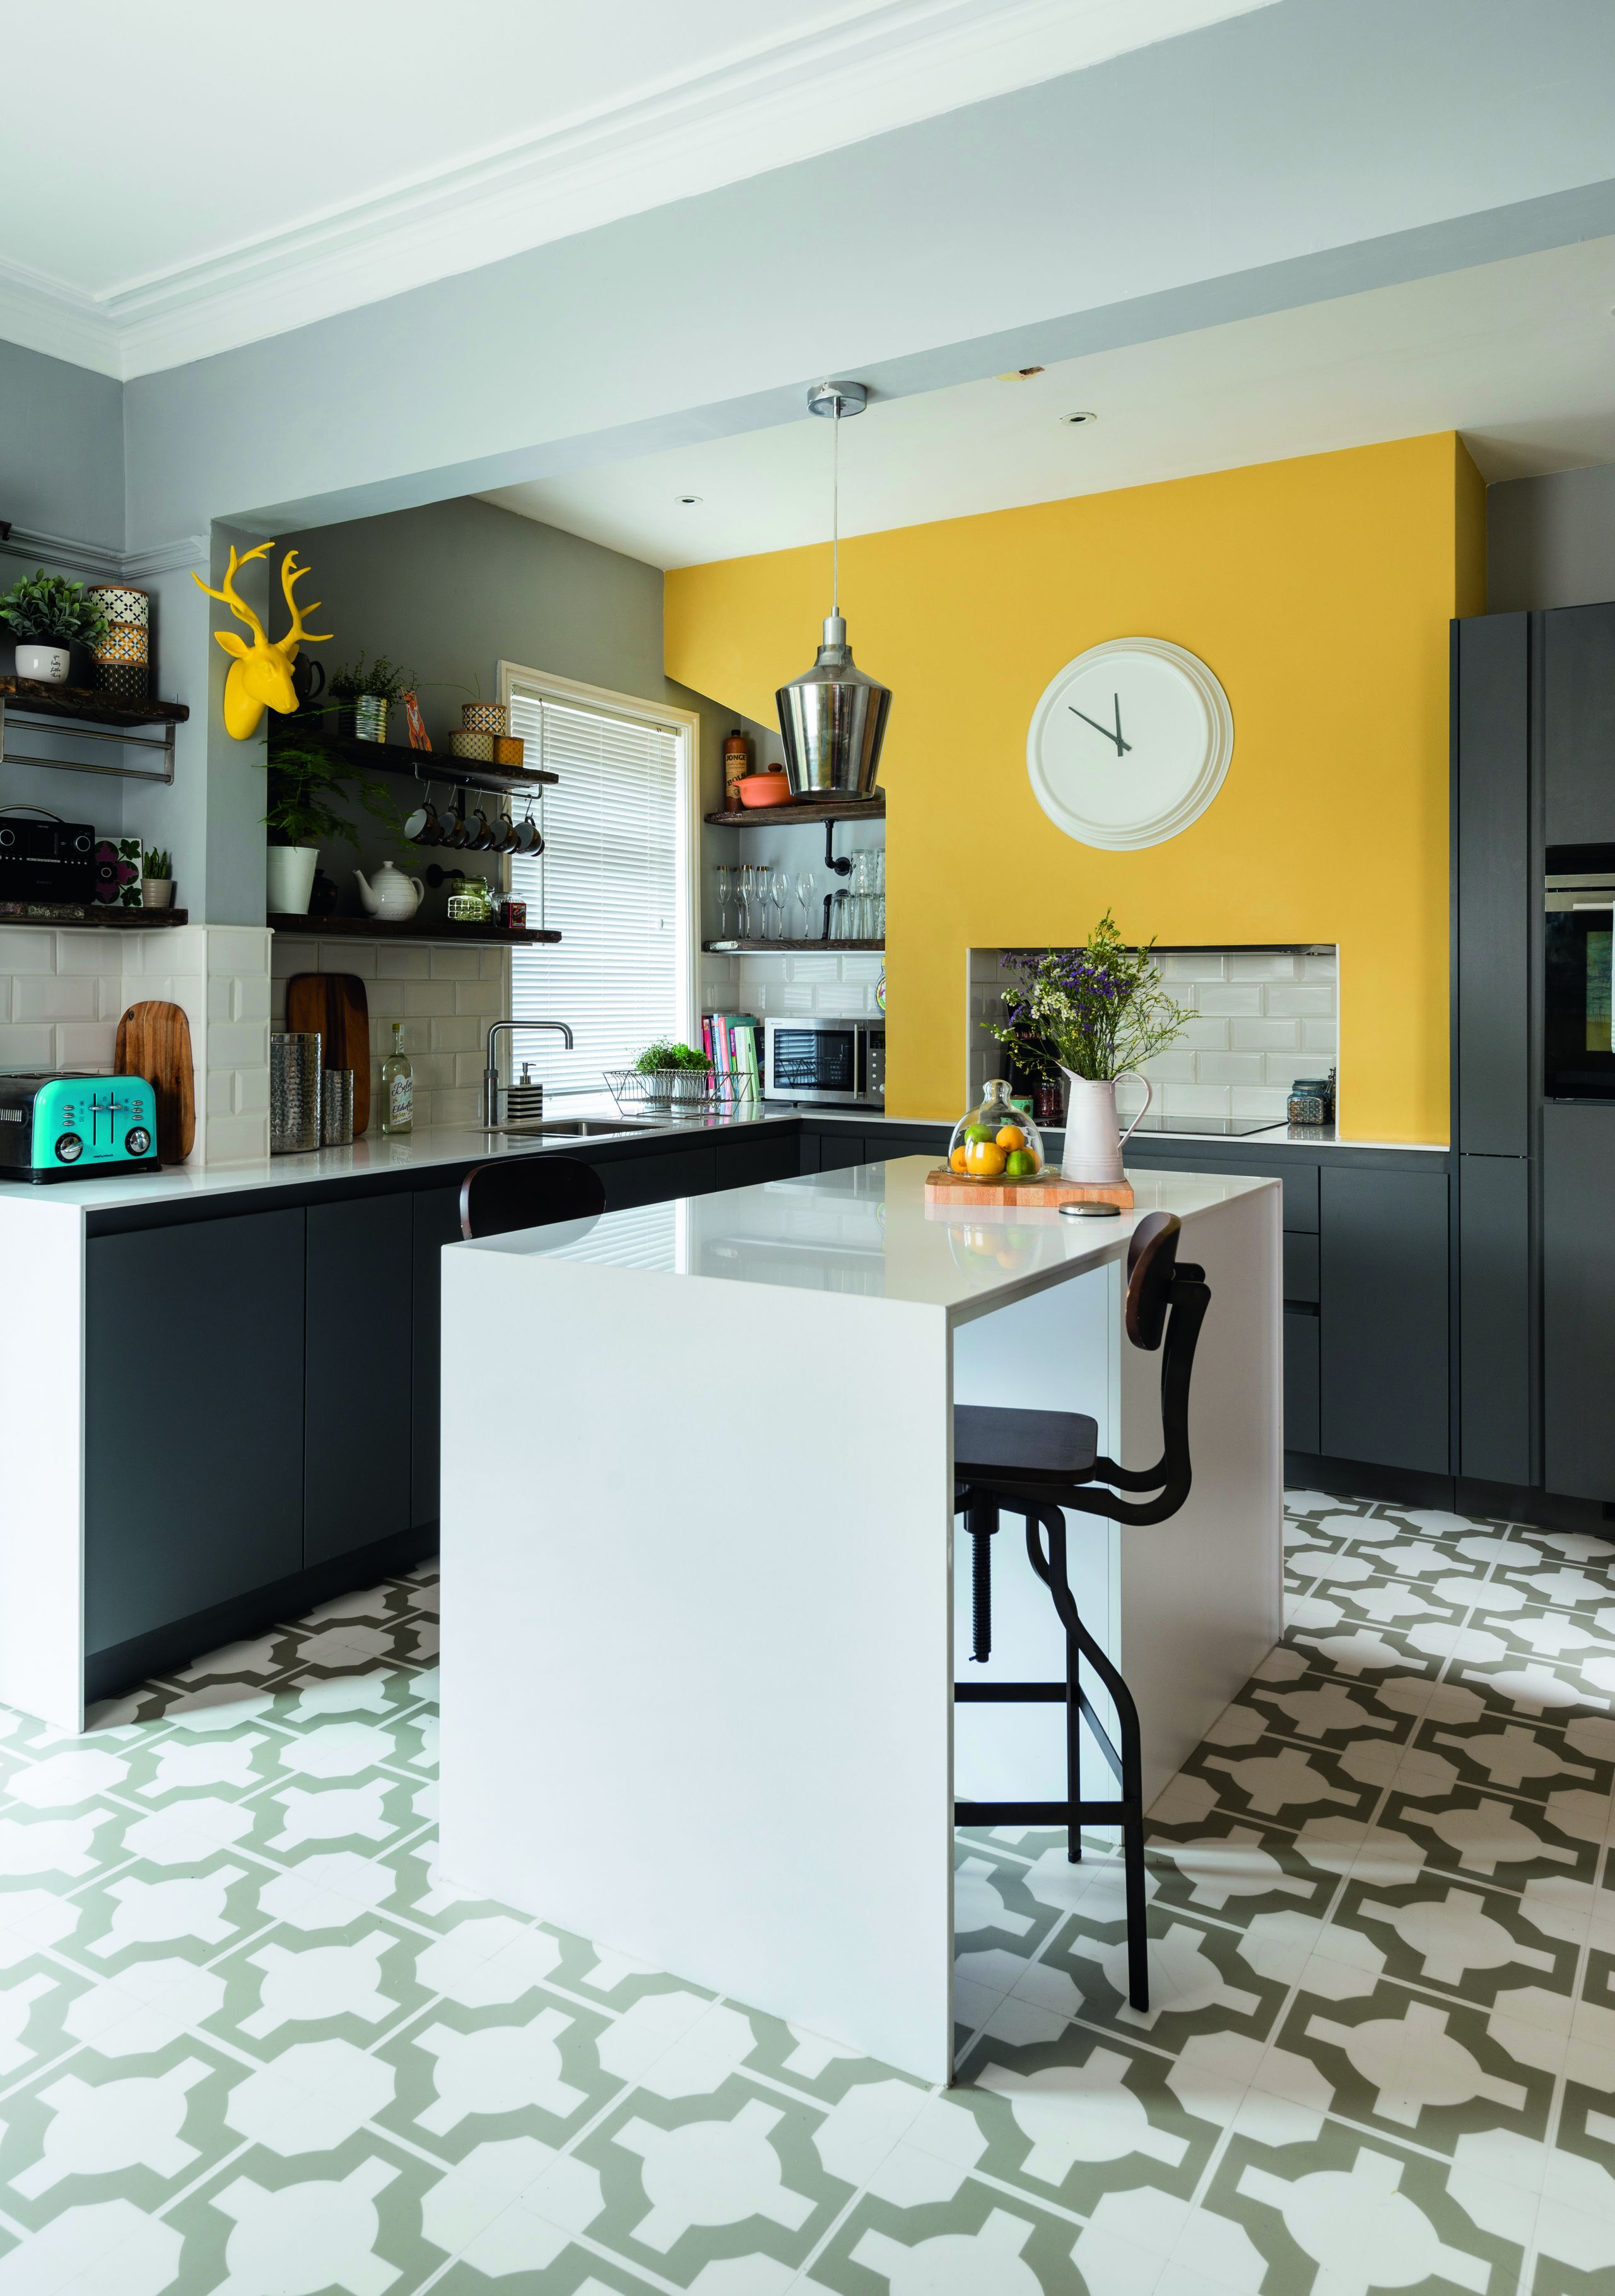 Yellow Kitchen Design Ideas 13 Colourful Kitchen Design Ideas Home Kitchen Colors Yellow